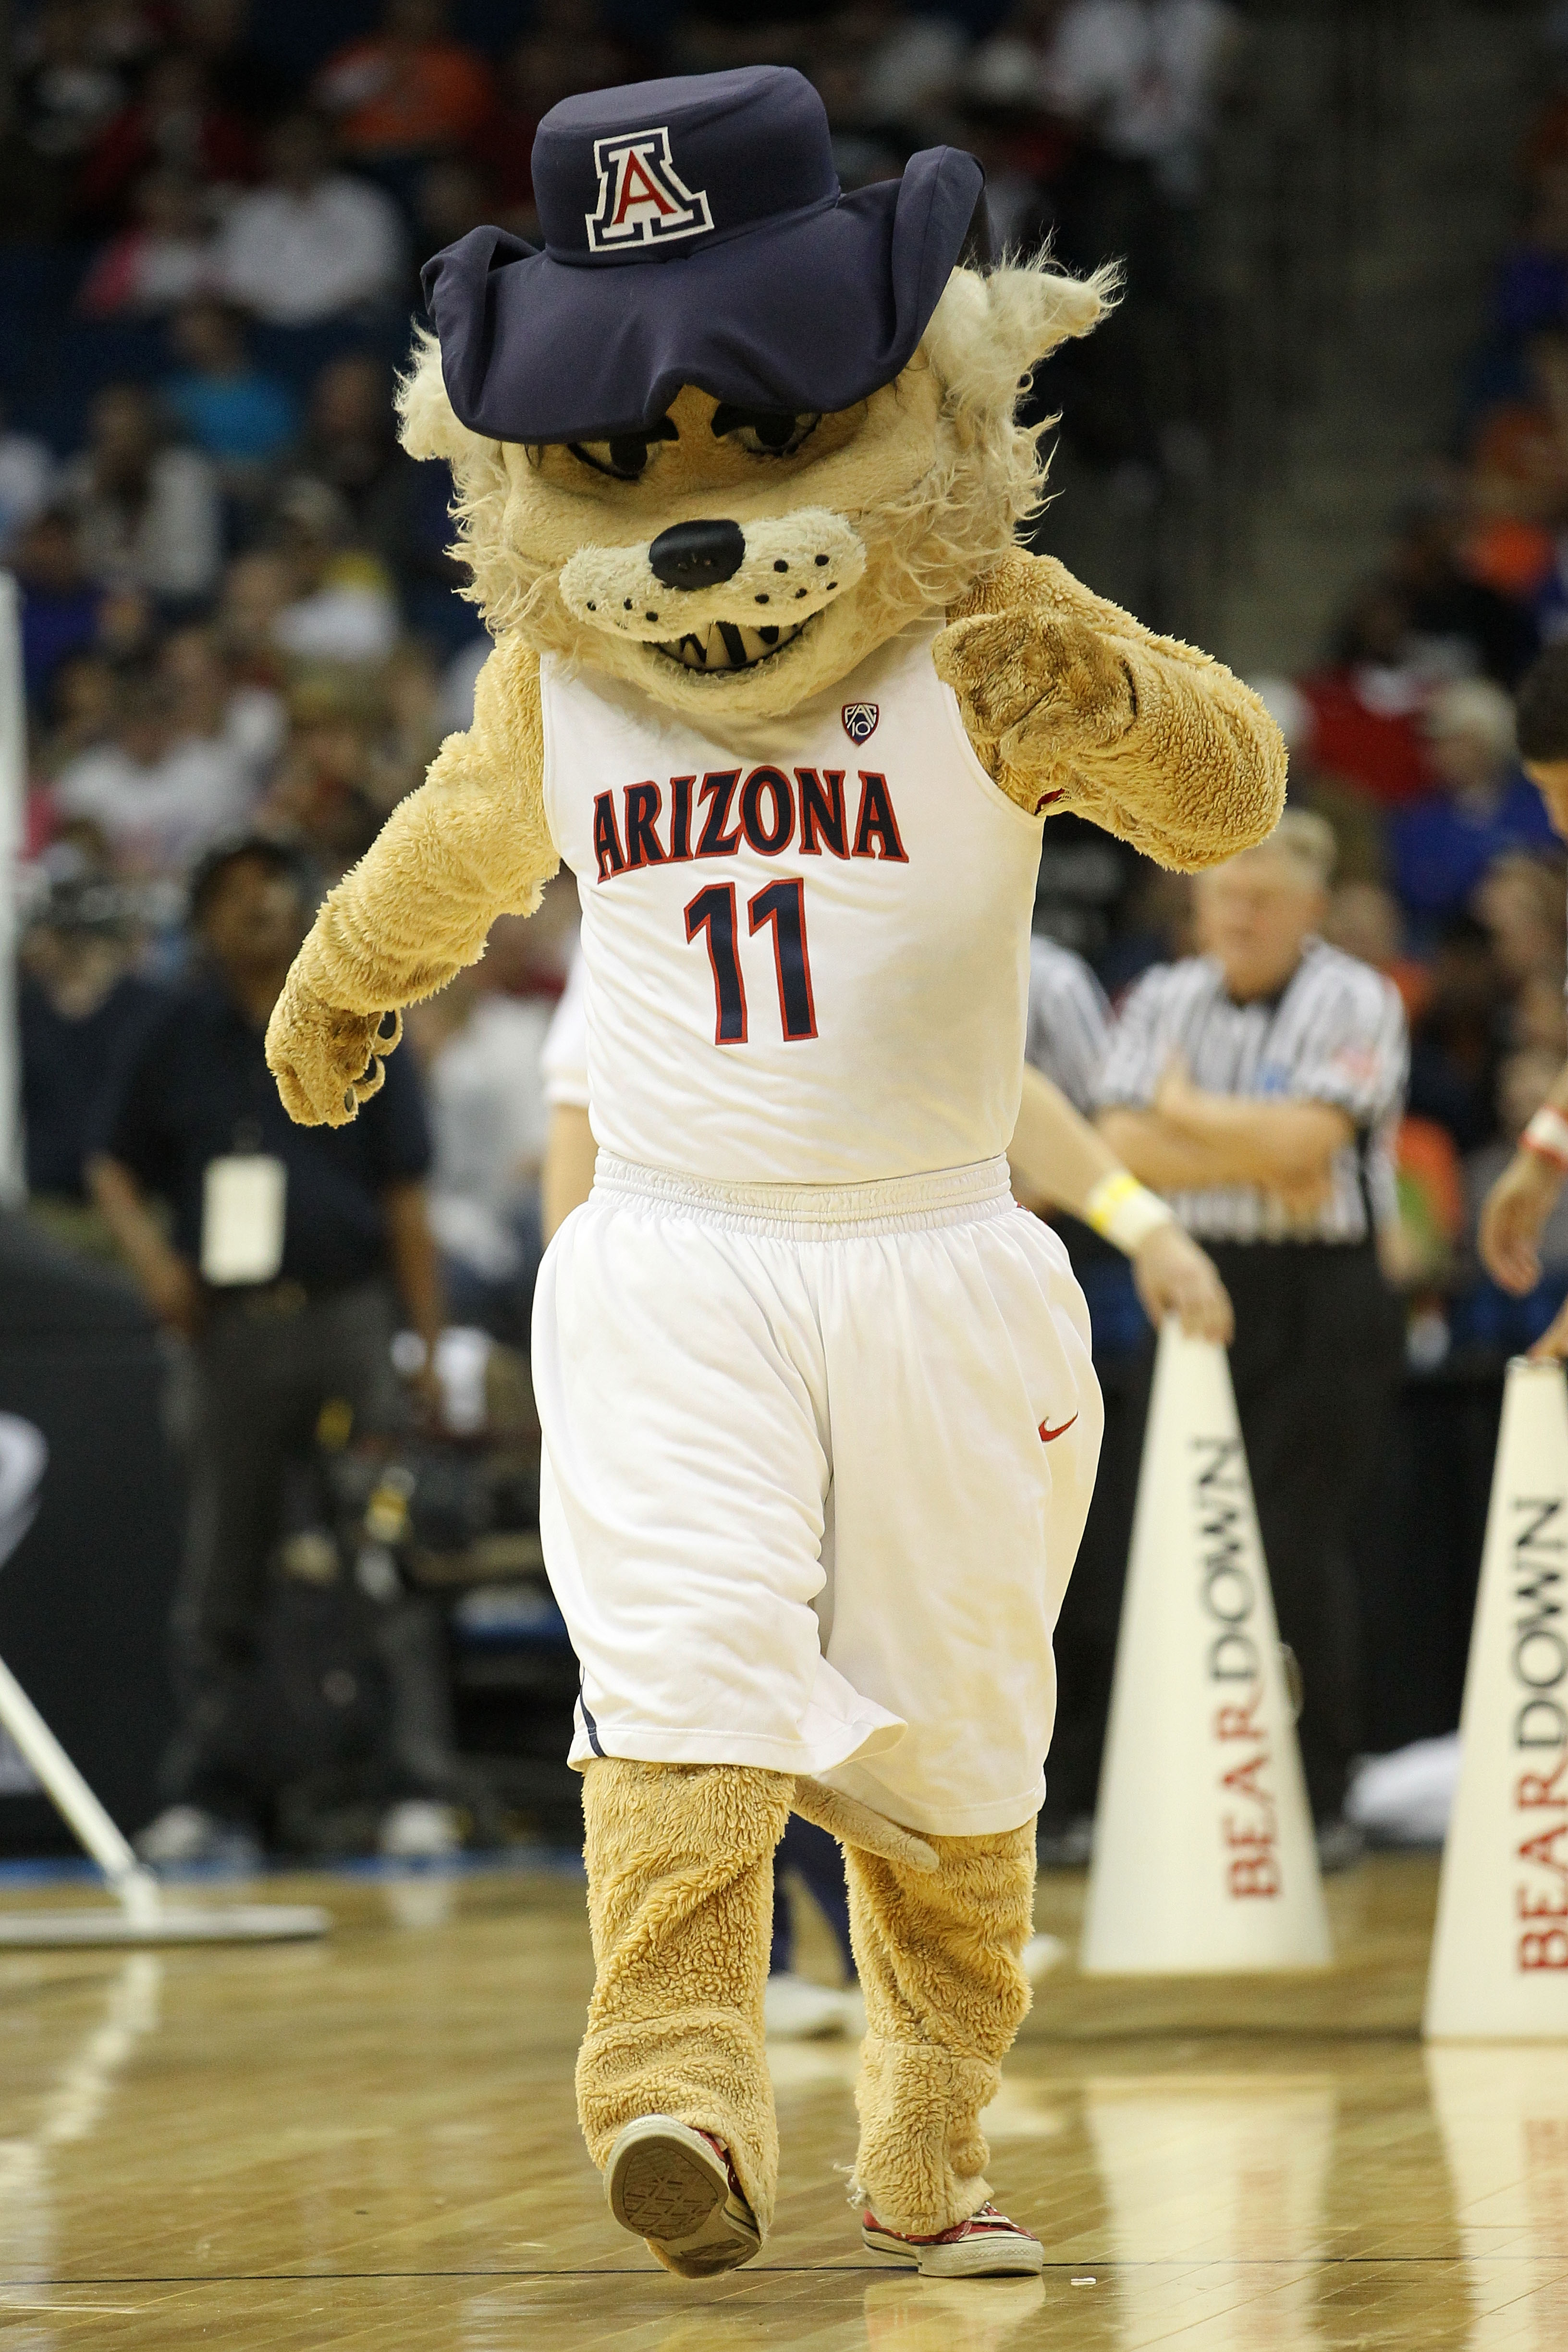 TULSA, OK - MARCH 18:  The Arizona Wildcats mascot performs during the second round game against the Memphis Tigers in the 2011 NCAA men's basketball tournament at BOK Center on March 18, 2011 in Tulsa, Oklahoma.  (Photo by Ronald Martinez/Getty Images)